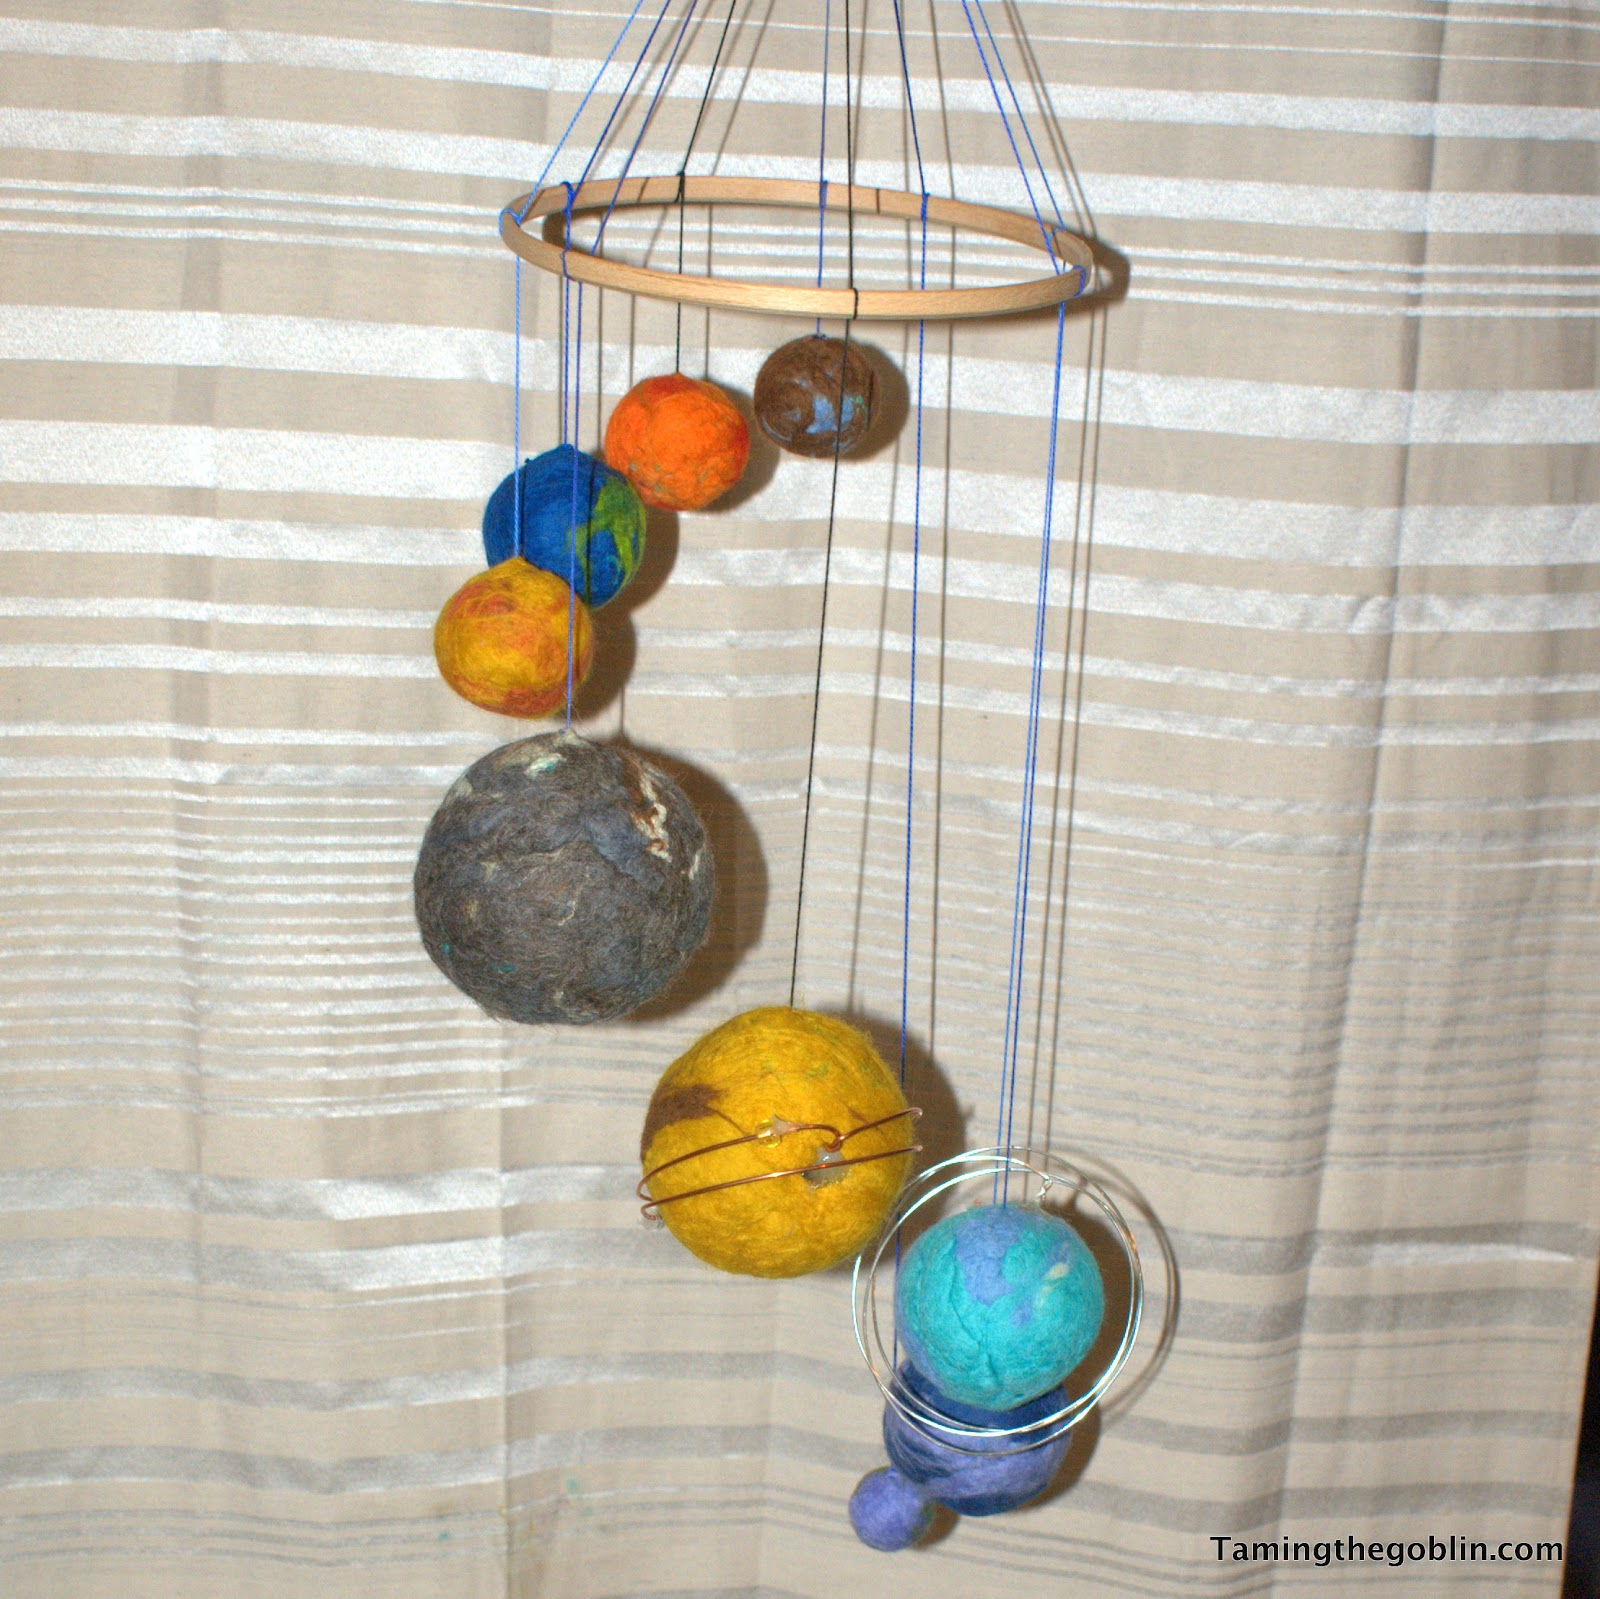 3d solar system school project - photo #20